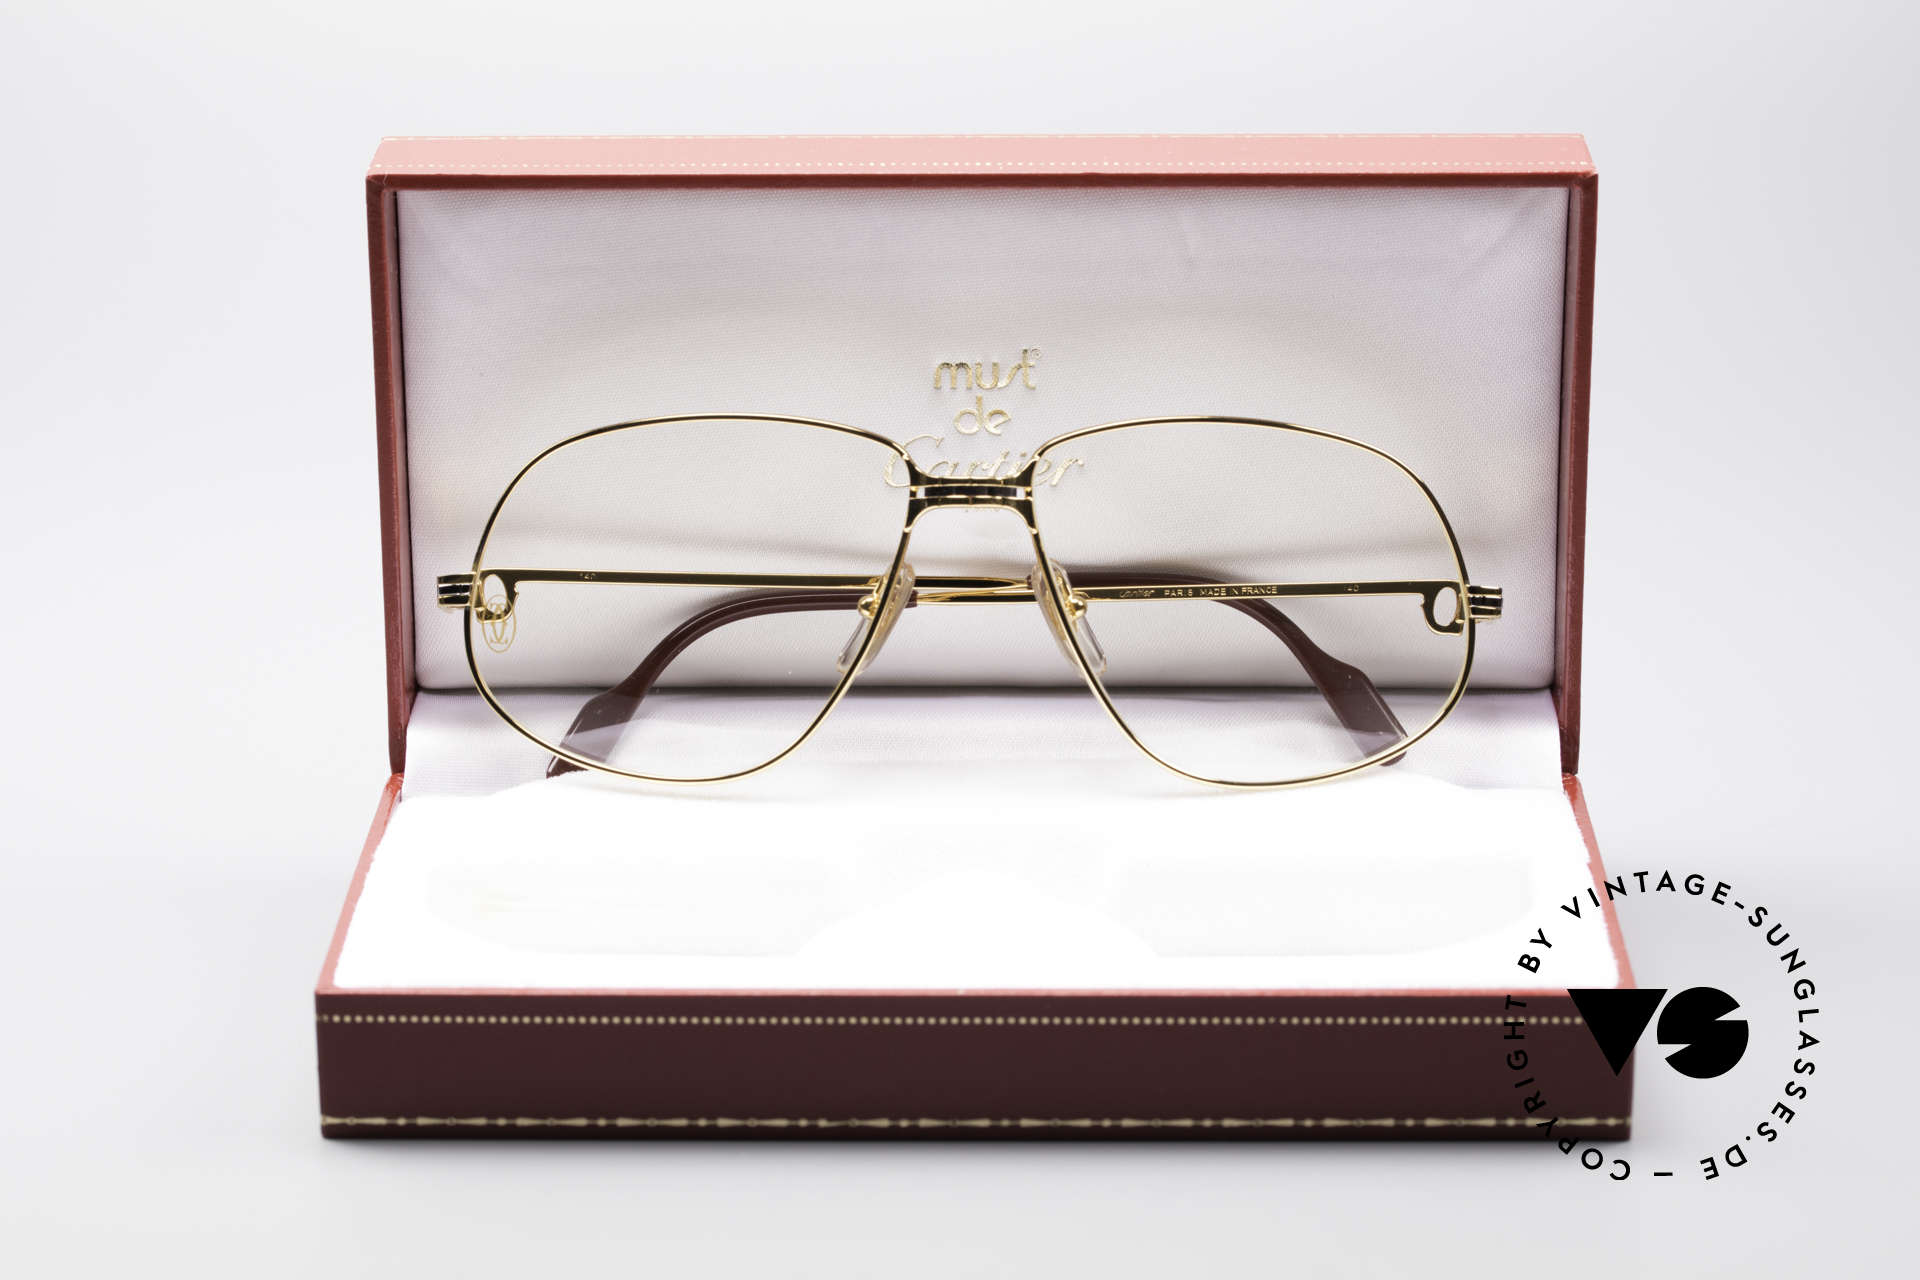 Cartier Panthere G.M. - XL Luxury Eyeglasses, unworn with orig. packing (hard to find in this condition), Made for Men